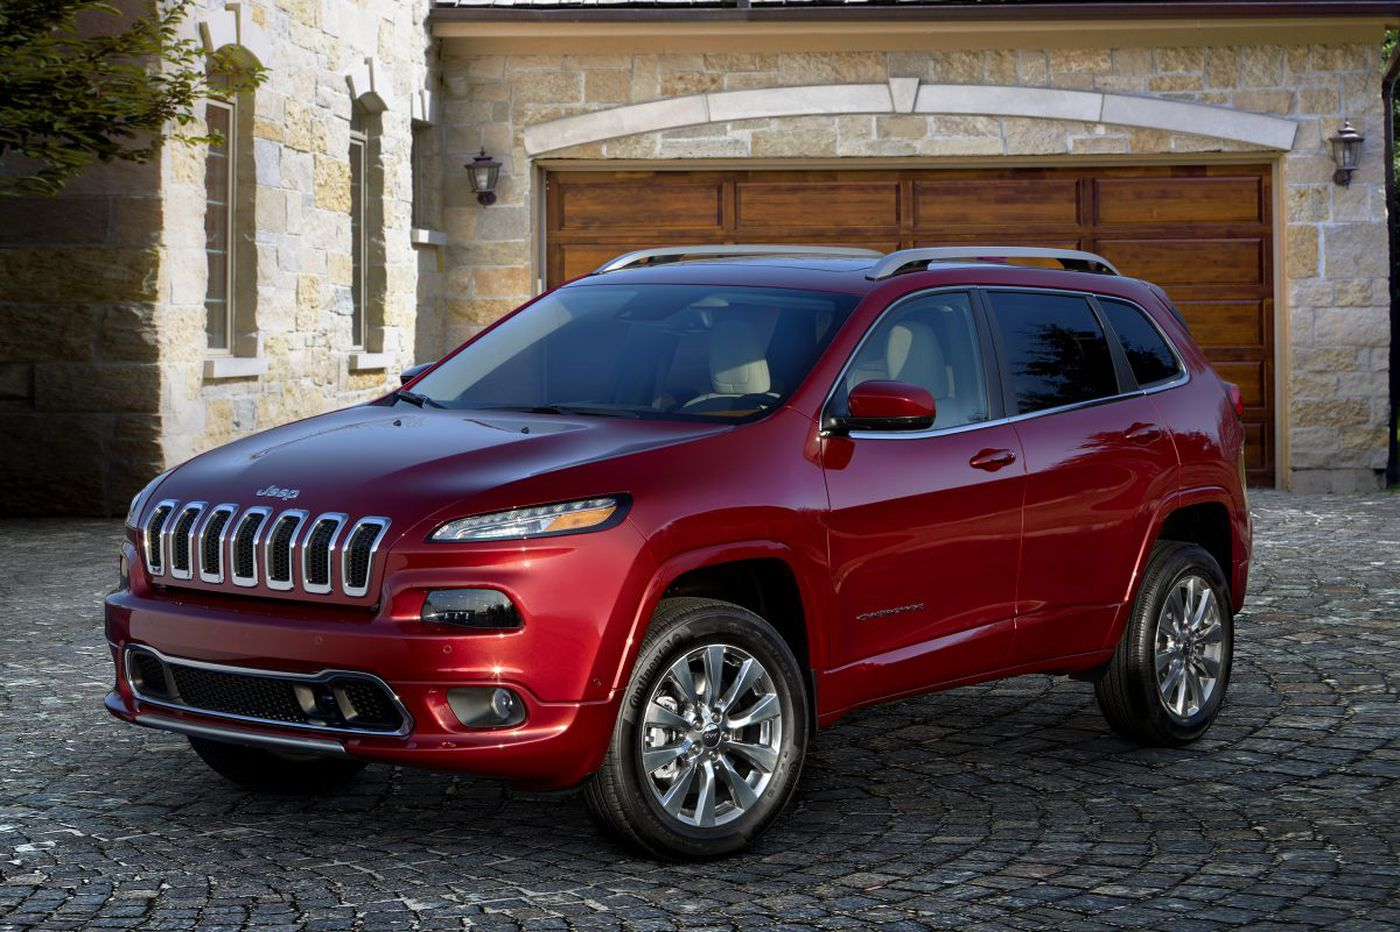 Jeep Cherokee Offers Rugged Old Style